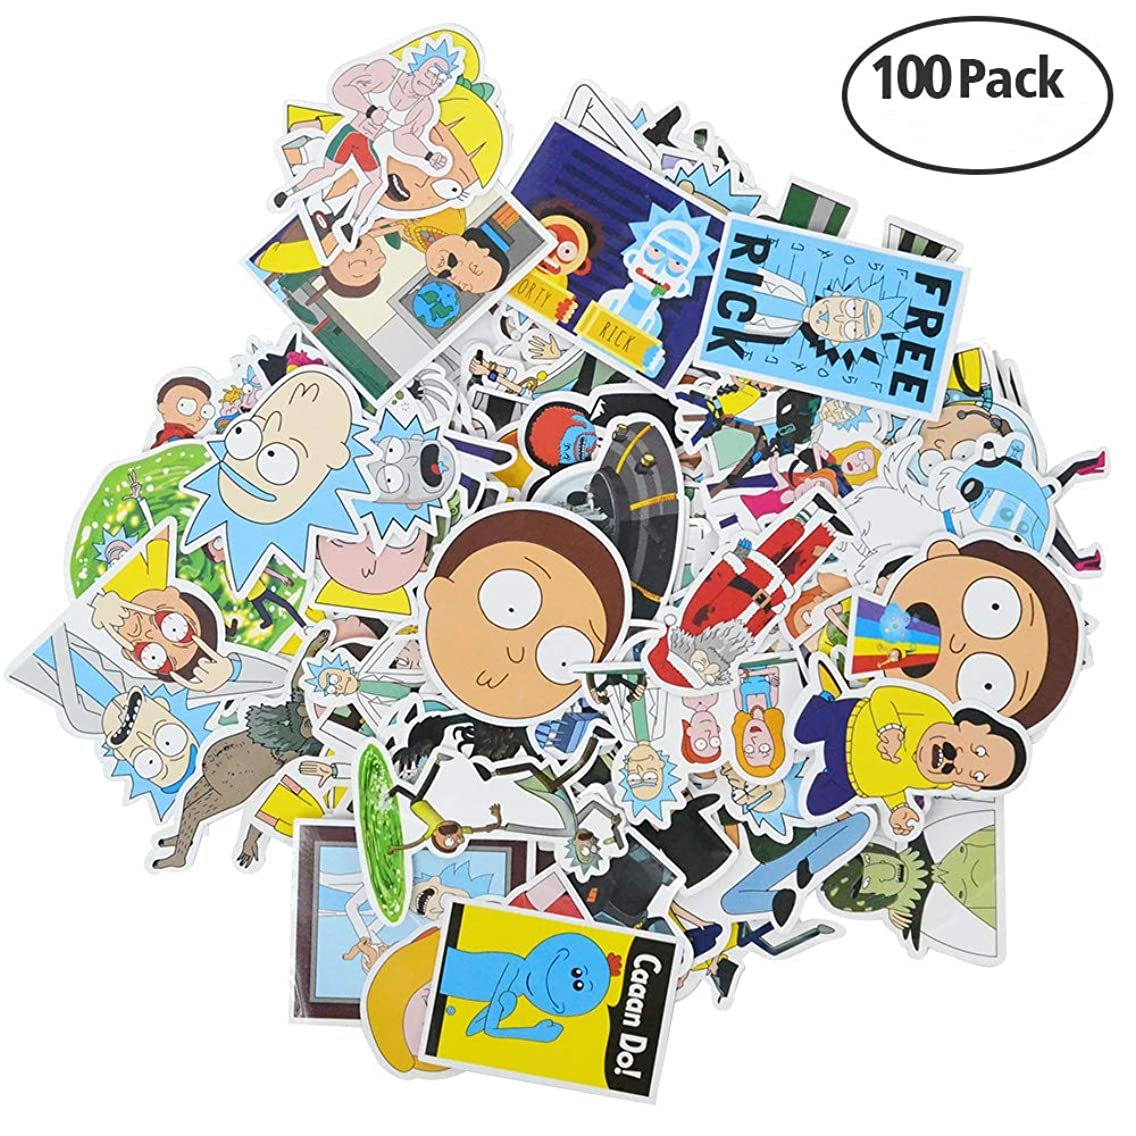 Stickers [50/100/104/110 PCS], Waterproof Vinyl Stickers for Laptop, Car, Bicycle, Helmet, Skateboard, Luggage No-Duplicate Stickers Per Set